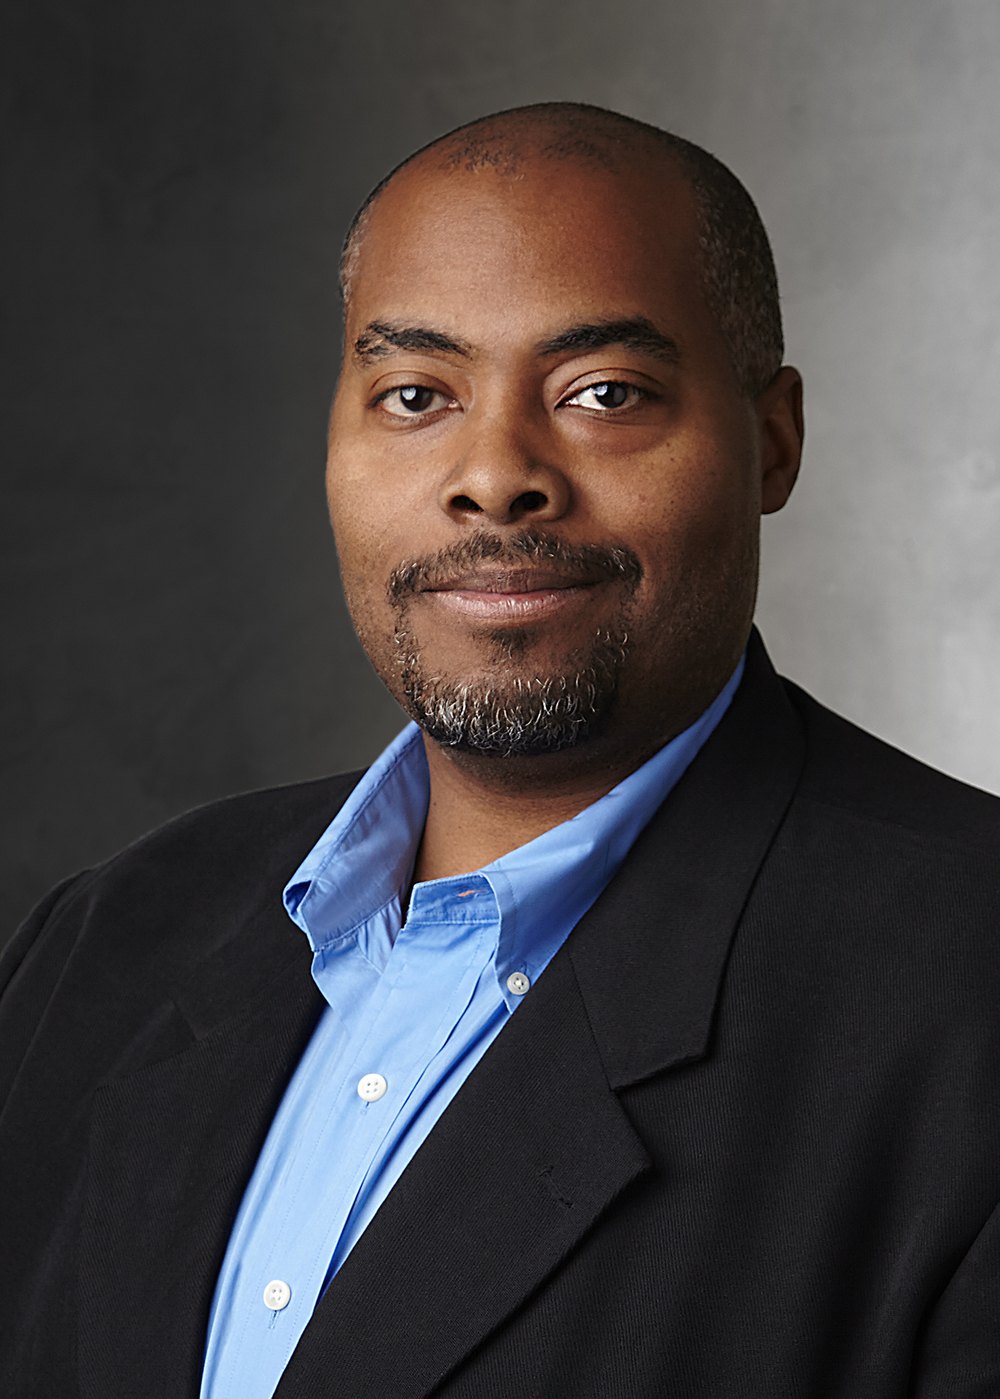 Carlton Jones, Chief Executive Officer